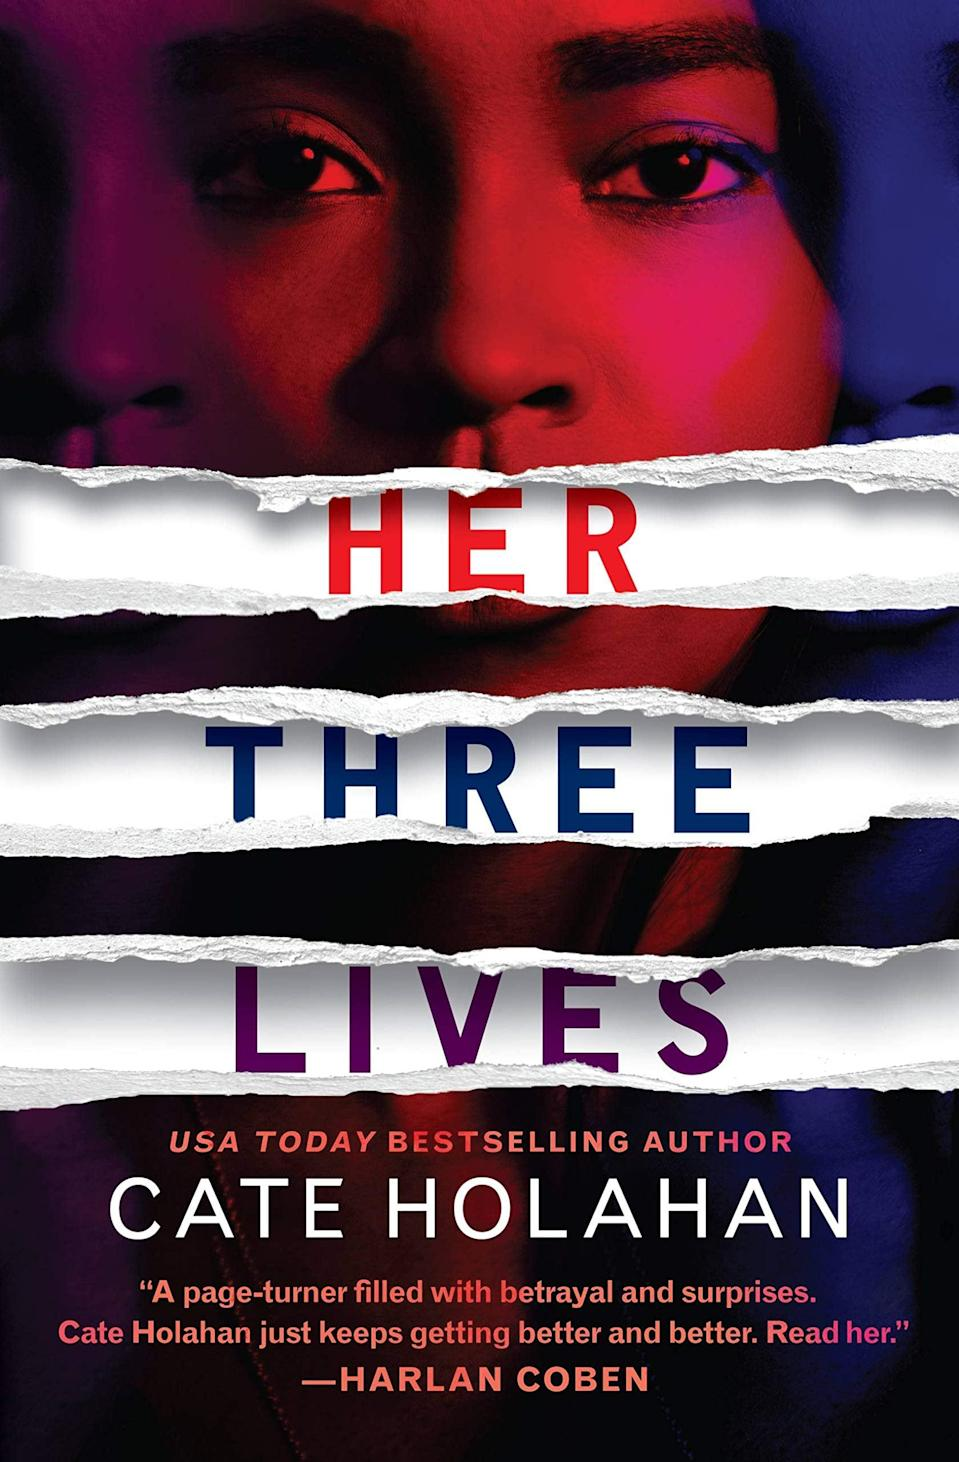 "<p>Craving a domestic thriller you can get lost in this month? Then look no further than <a href=""https://www.amazon.com/Her-Three-Lives-Cate-Holahan/dp/1538736349"" class=""link rapid-noclick-resp"" rel=""nofollow noopener"" target=""_blank"" data-ylk=""slk:Her Three Lives""><strong>Her Three Lives</strong></a> by Cate Holahan. This story of a marriage crumbling in real time takes place after a home invasion leaves the husband housebound and obsessed with uncovering his wife's secrets. </p> <p><em>Out April 20</em></p>"